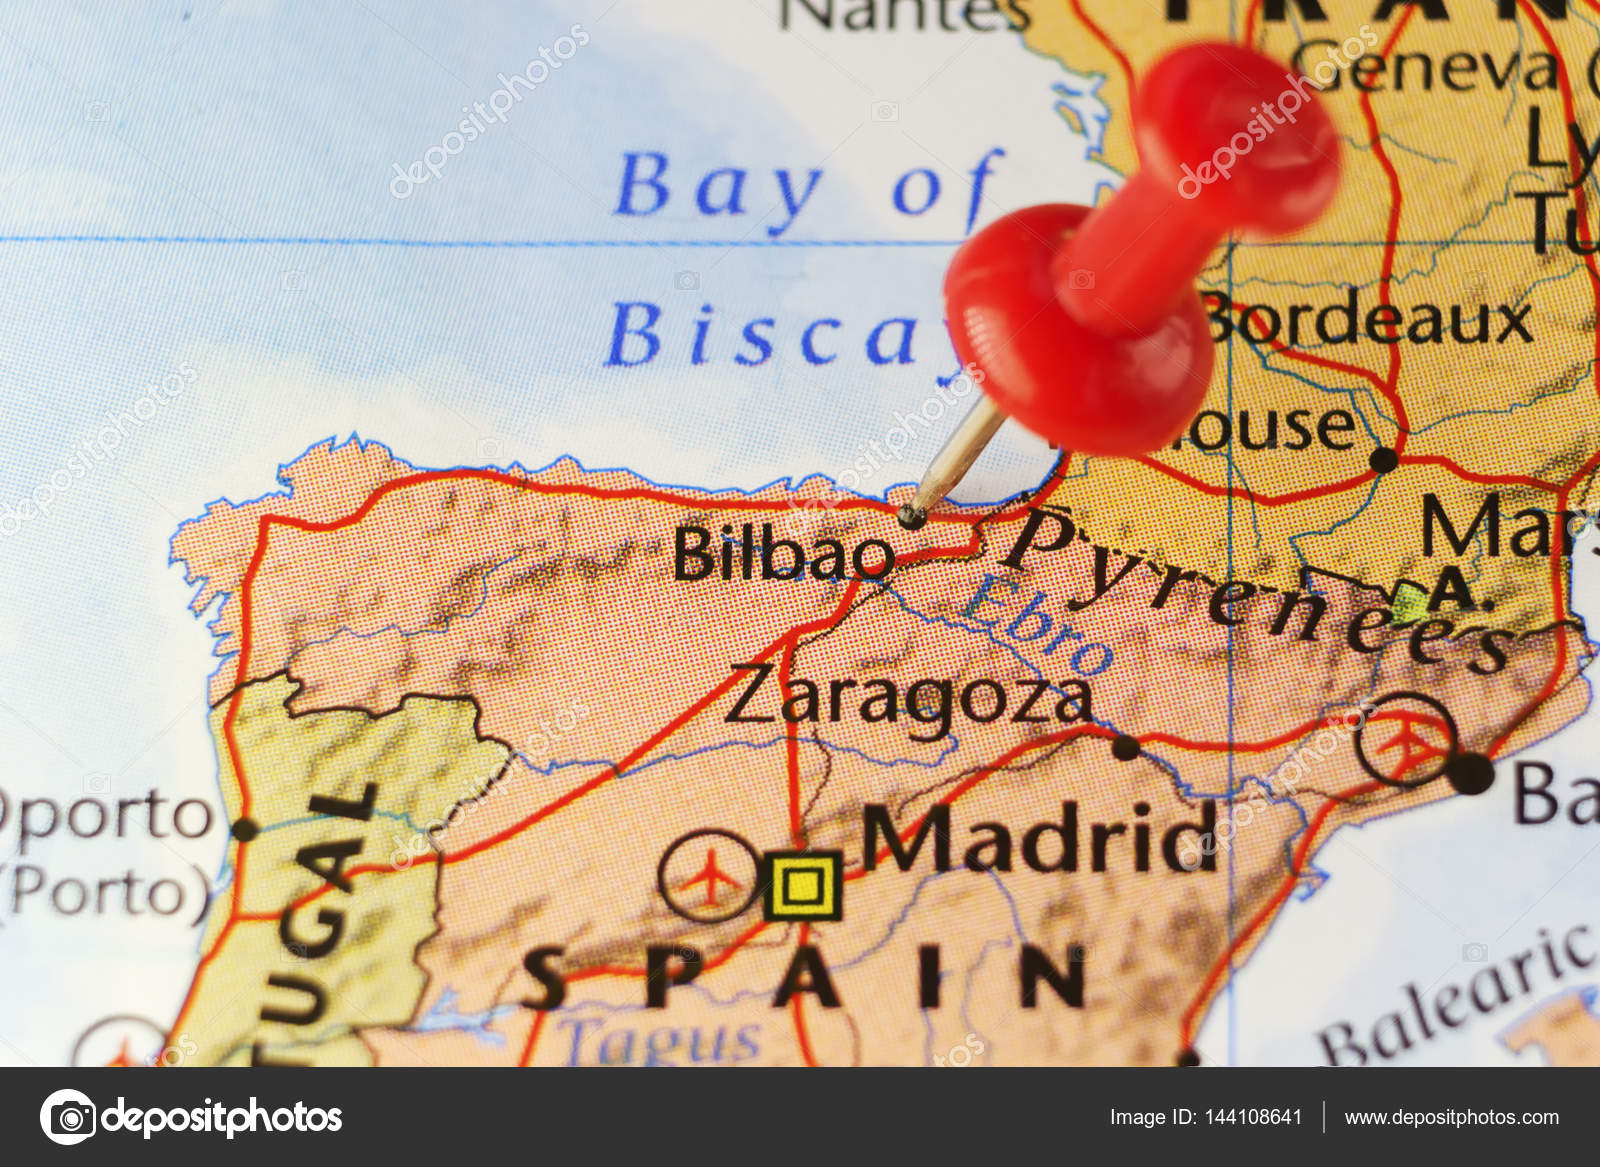 Bilbao On Map Of Spain.Red Pin On Bilbao Spain Stock Photo C Llucky78 144108641